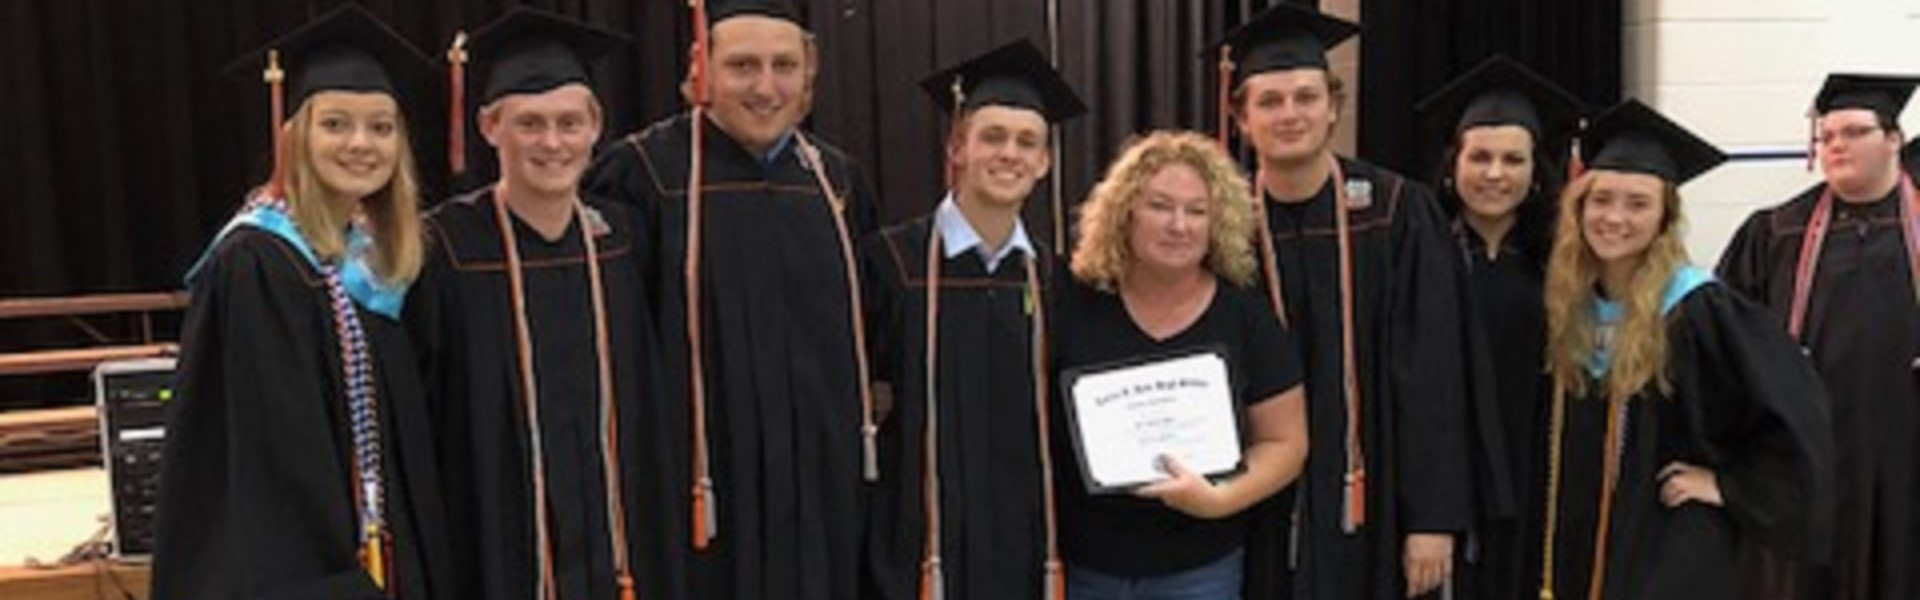 Mrs. Haley w/ her Ryle honorary diploma students